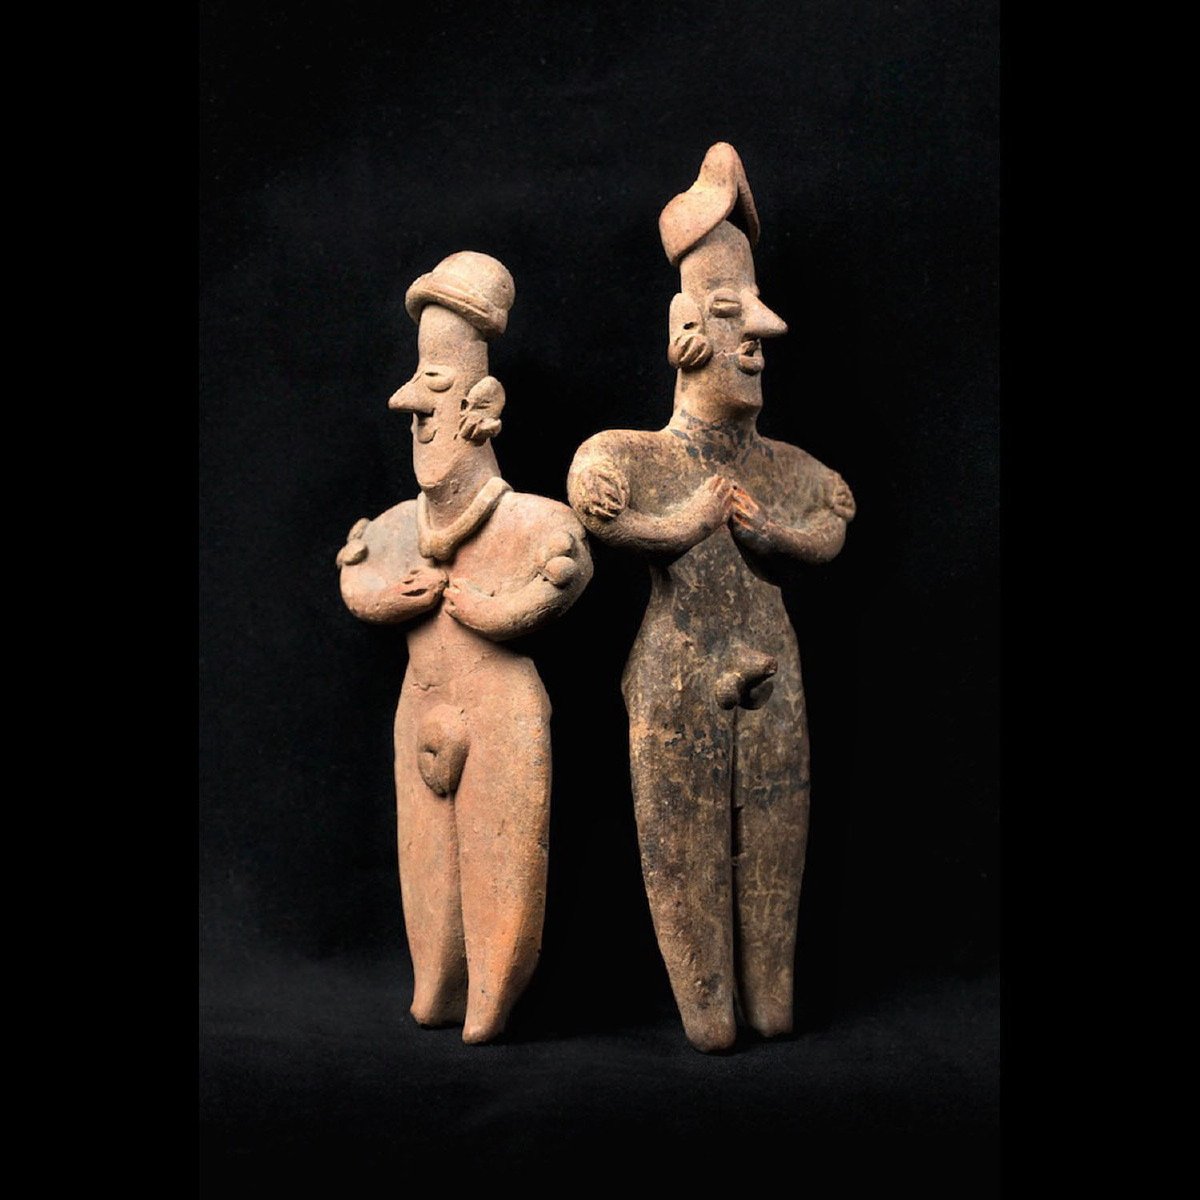 Photo of colima-mexico-statuette-archeology-mesoamerica-shaft-tomb